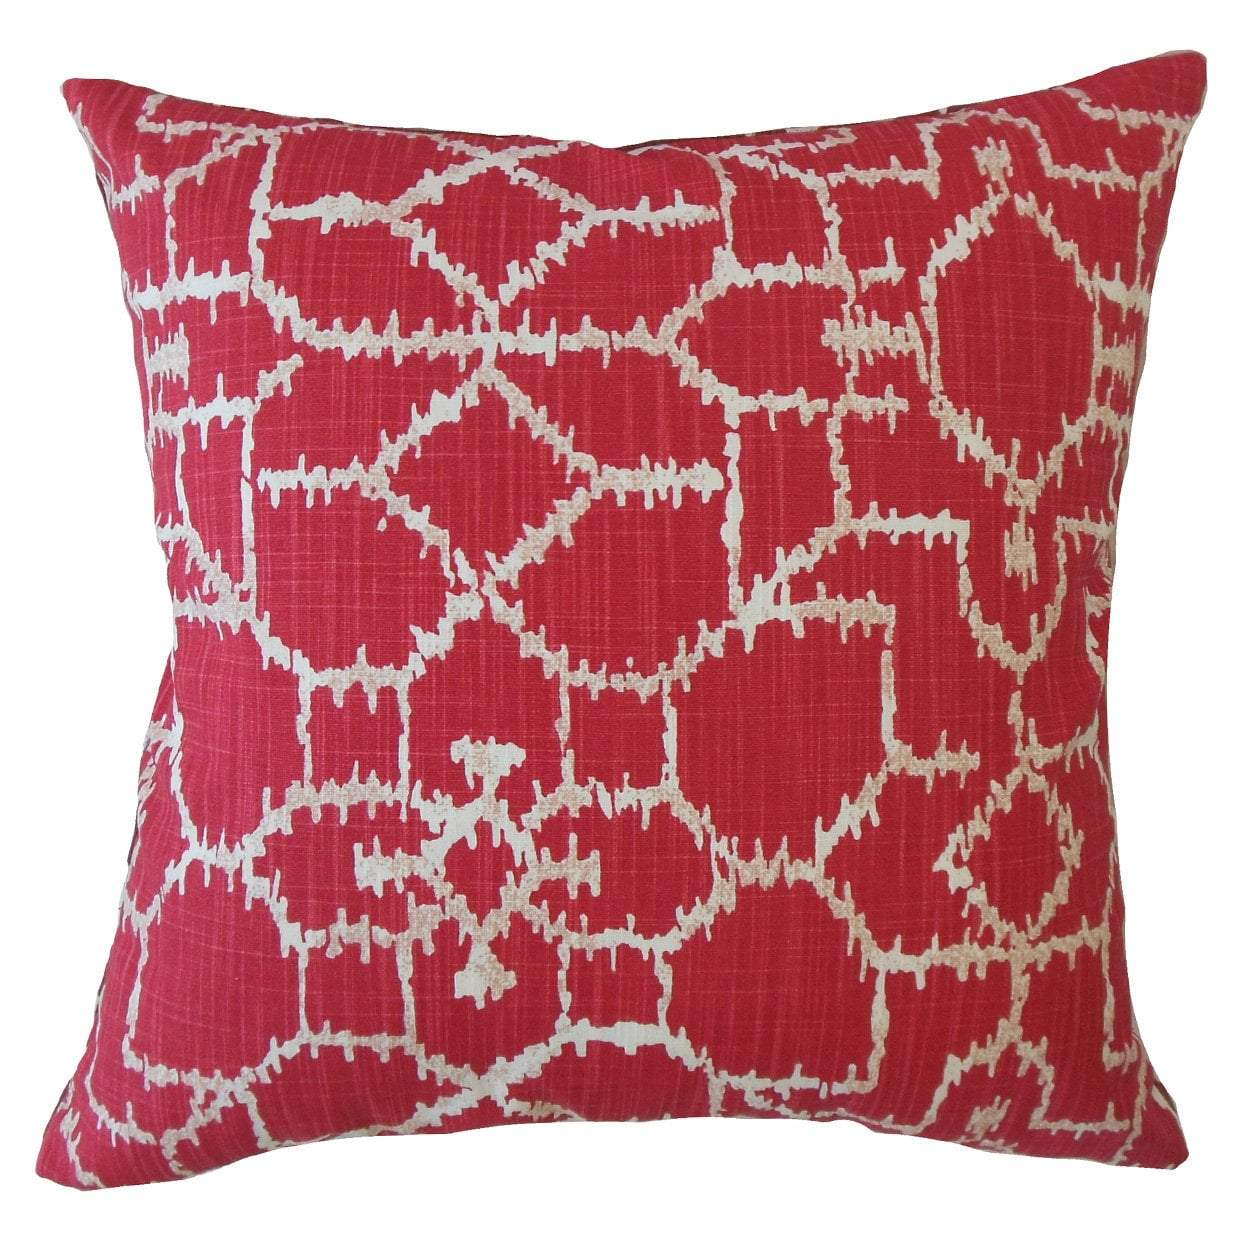 Roux Throw Pillow Cover